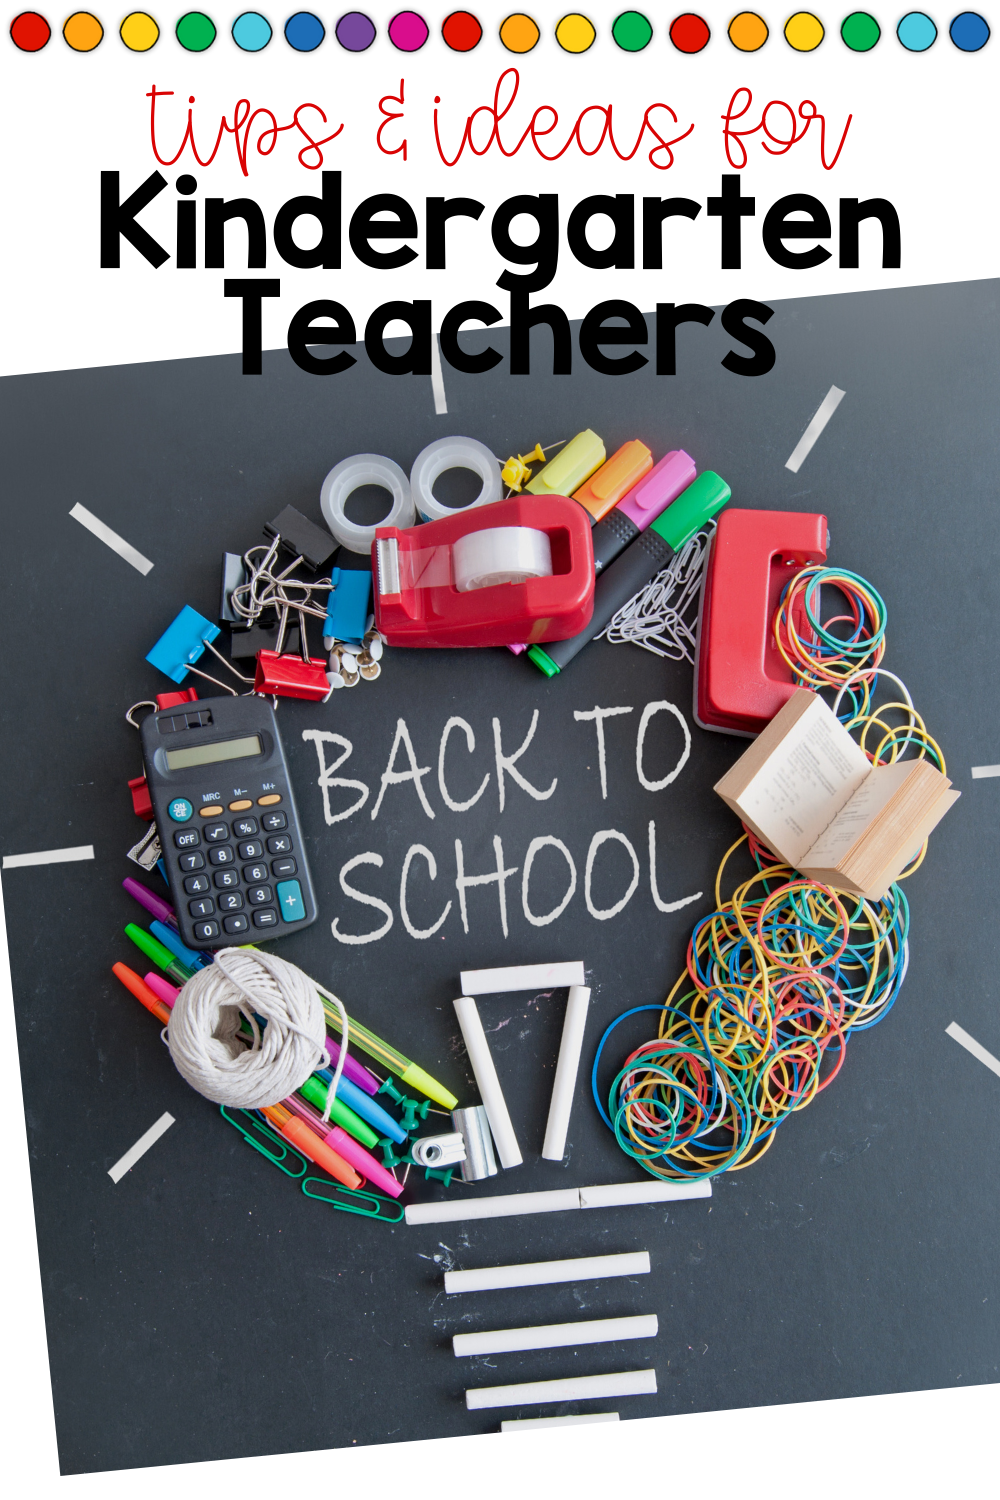 The BEST Back To School tips & ideas for Kindergarten teachers! #backtoschool #kindergartenteachers #classroomideas